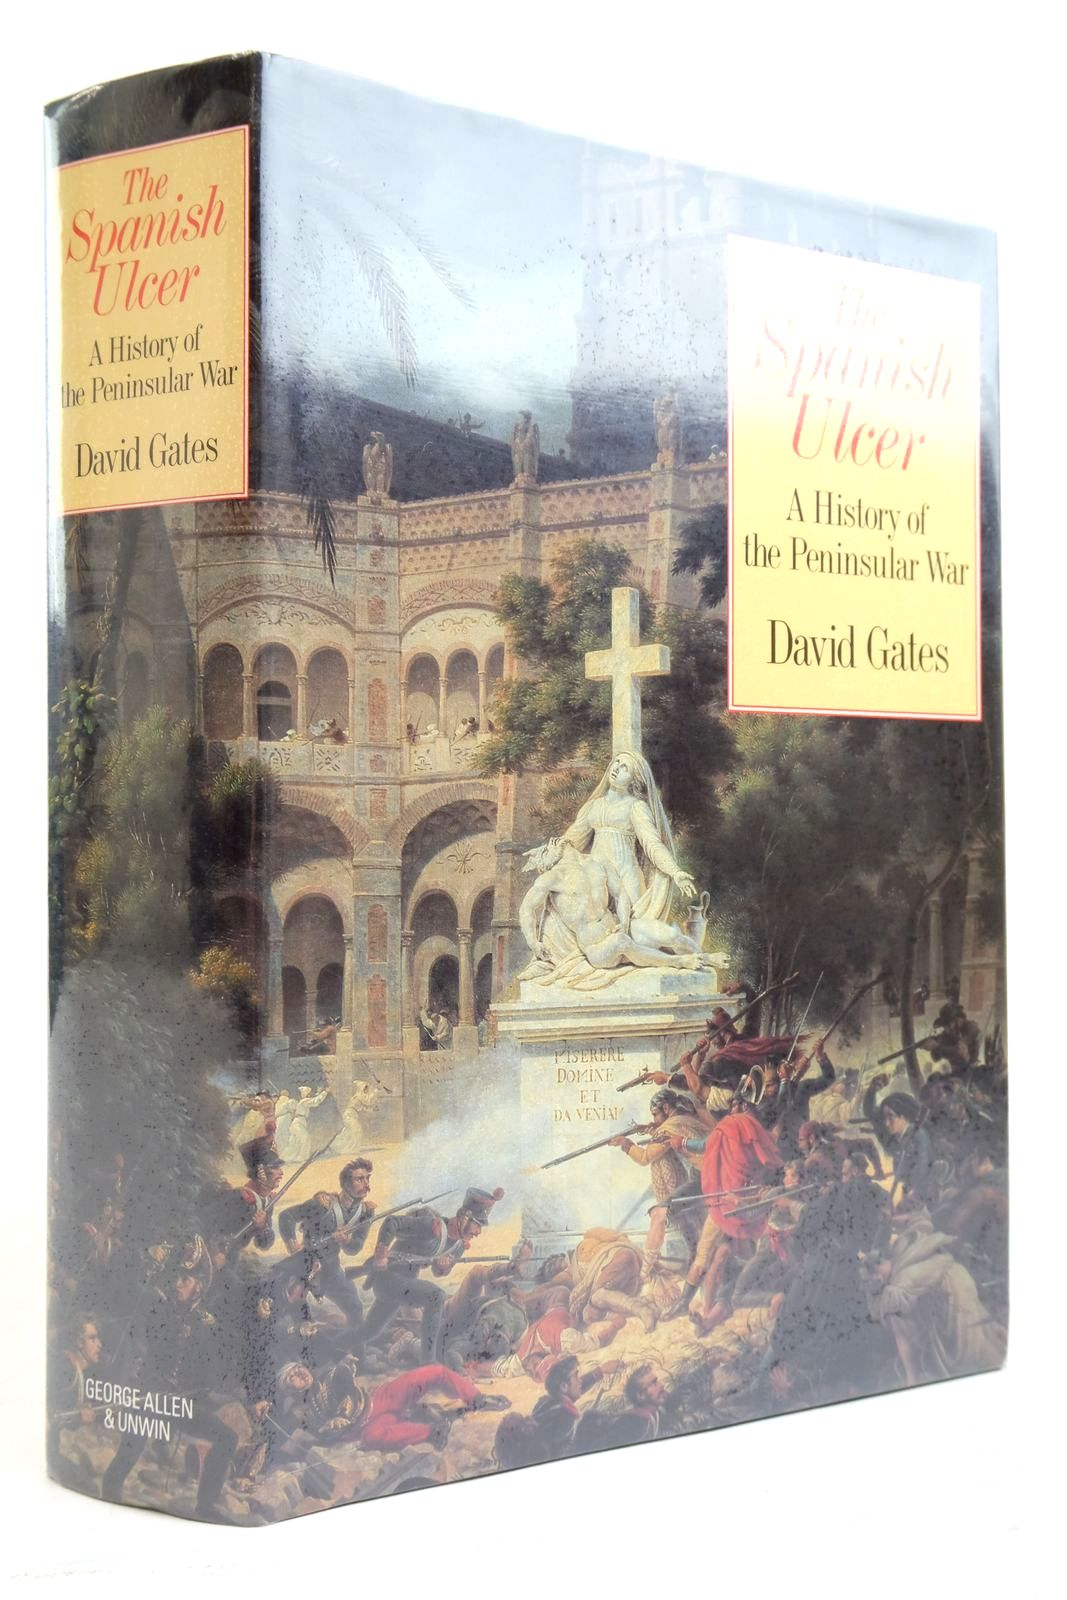 Photo of THE SPANISH ULCER written by Gates, David published by George Allen & Unwin (STOCK CODE: 2135389)  for sale by Stella & Rose's Books